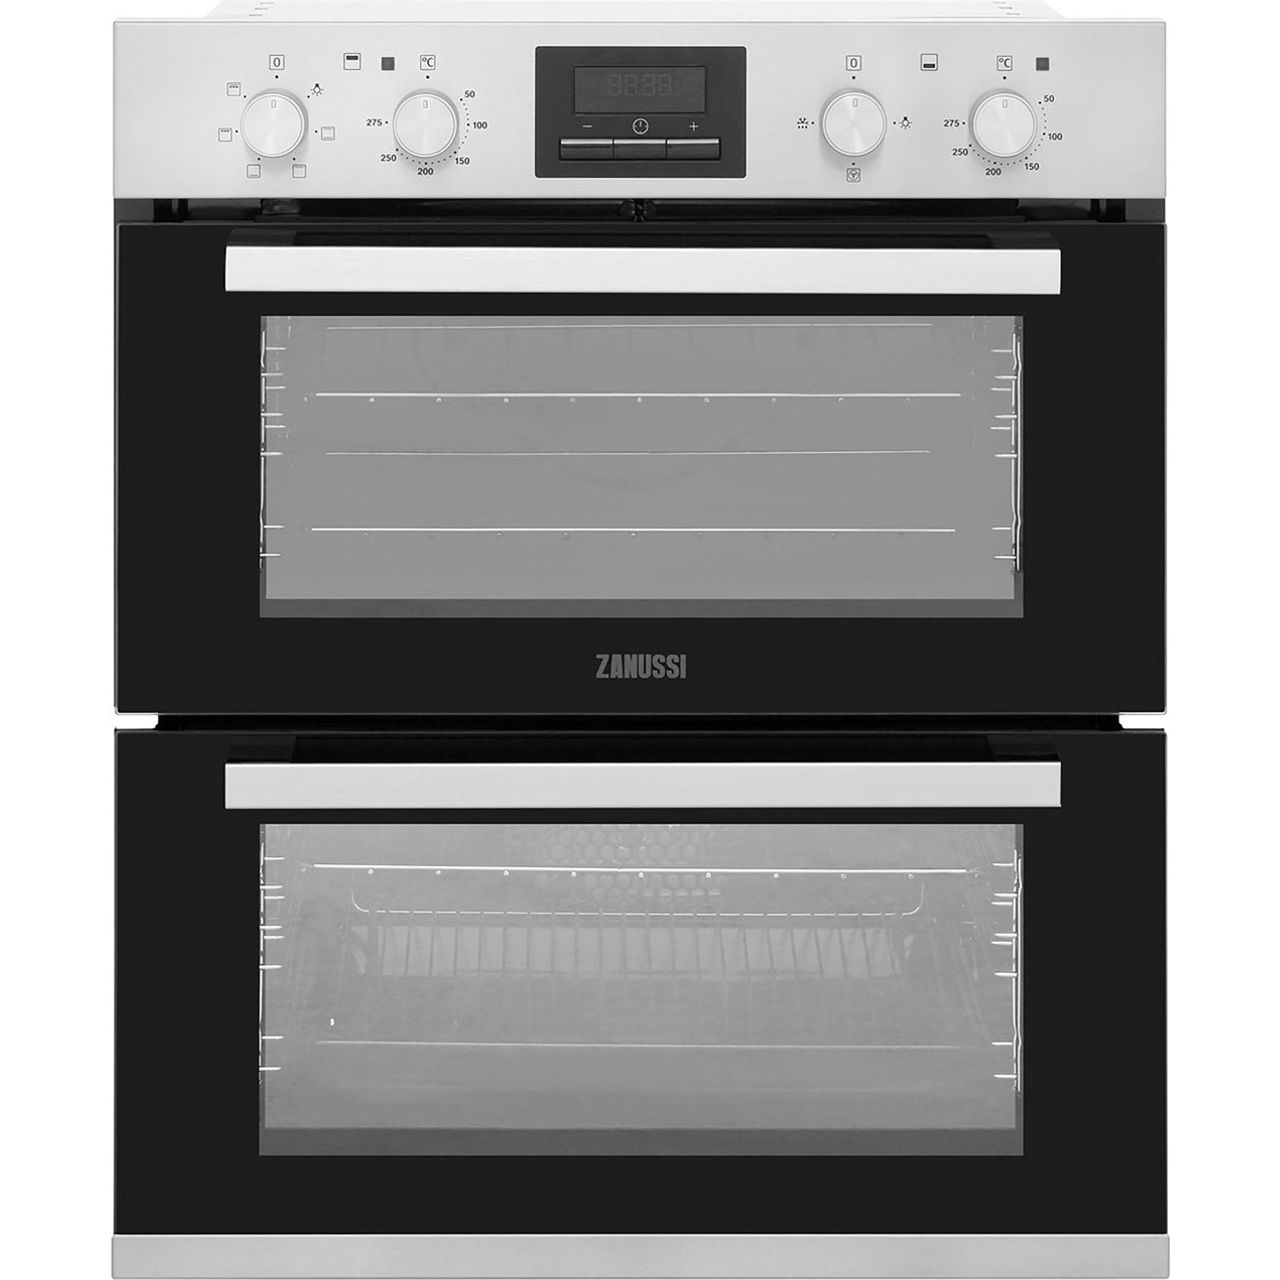 Wiring zanussi cooker wiring diagram for light switch wiring diagram for zanussi oven free download wiring diagram rh color castles com service zanussi wiring diagram for zanussi cooker asfbconference2016 Choice Image